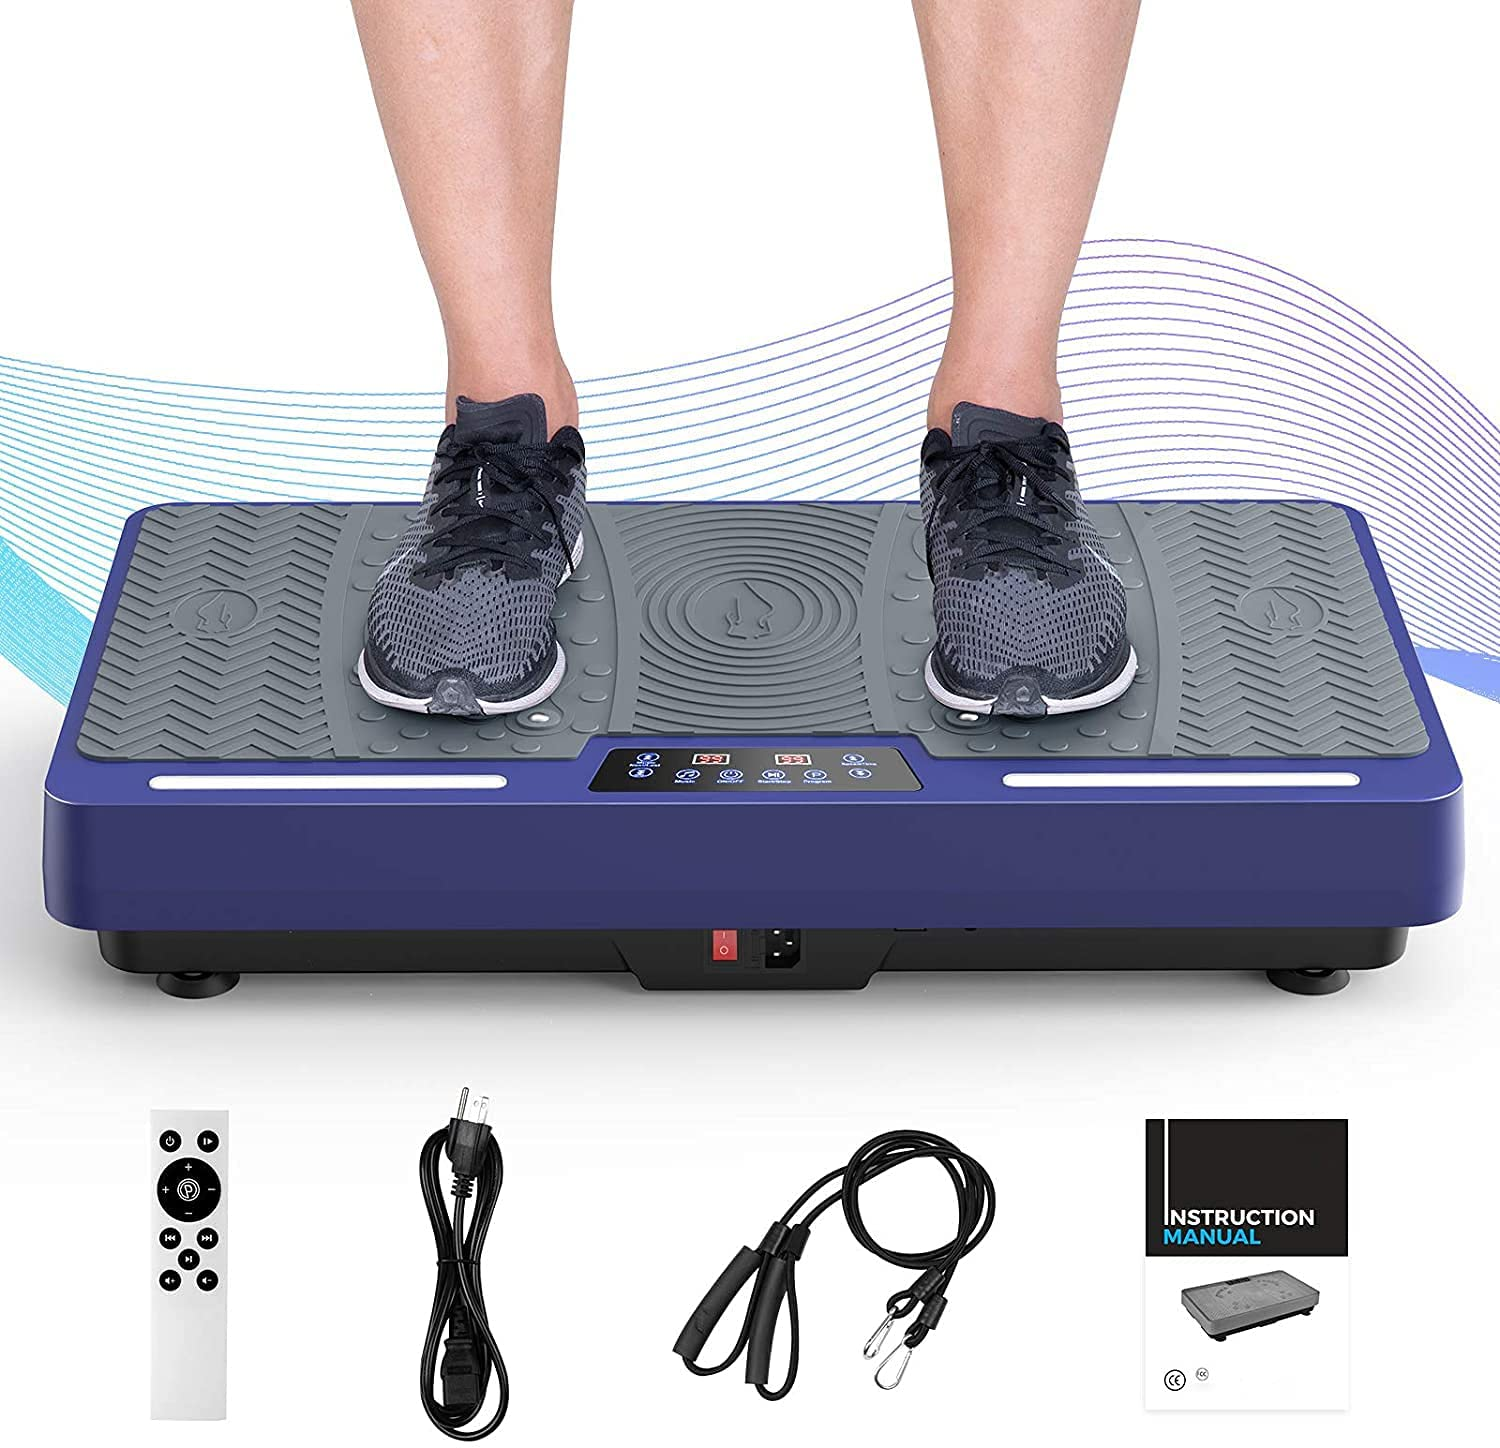 RINKMO Vibration Max 41% OFF Virginia Beach Mall Plate Exercise Machine Whole Body Vibr Workout